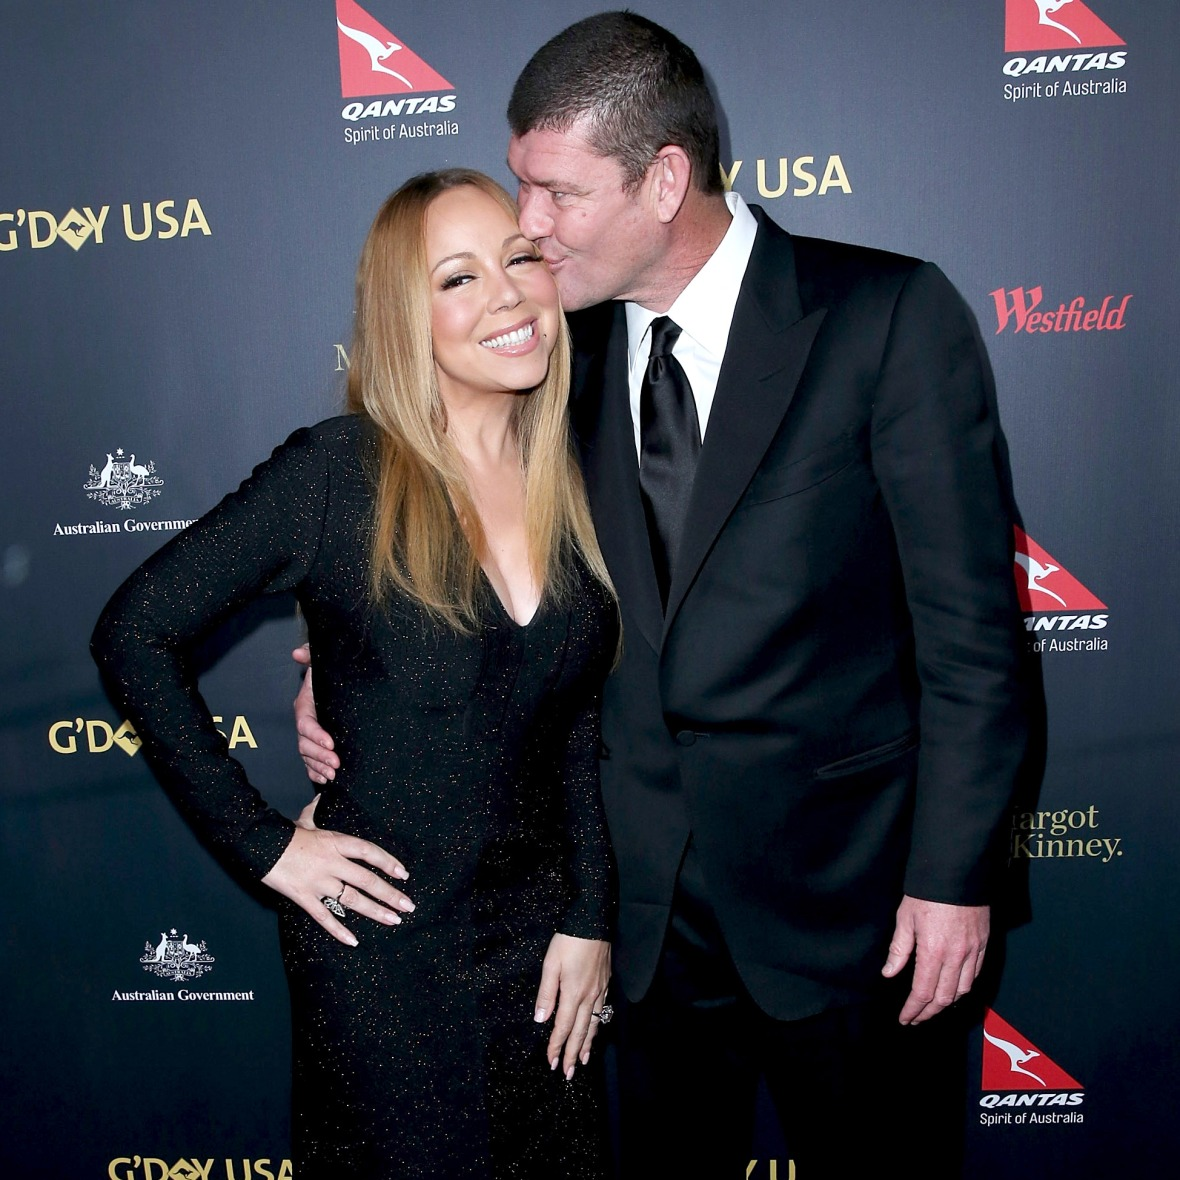 mariah carey and james packer -getty images